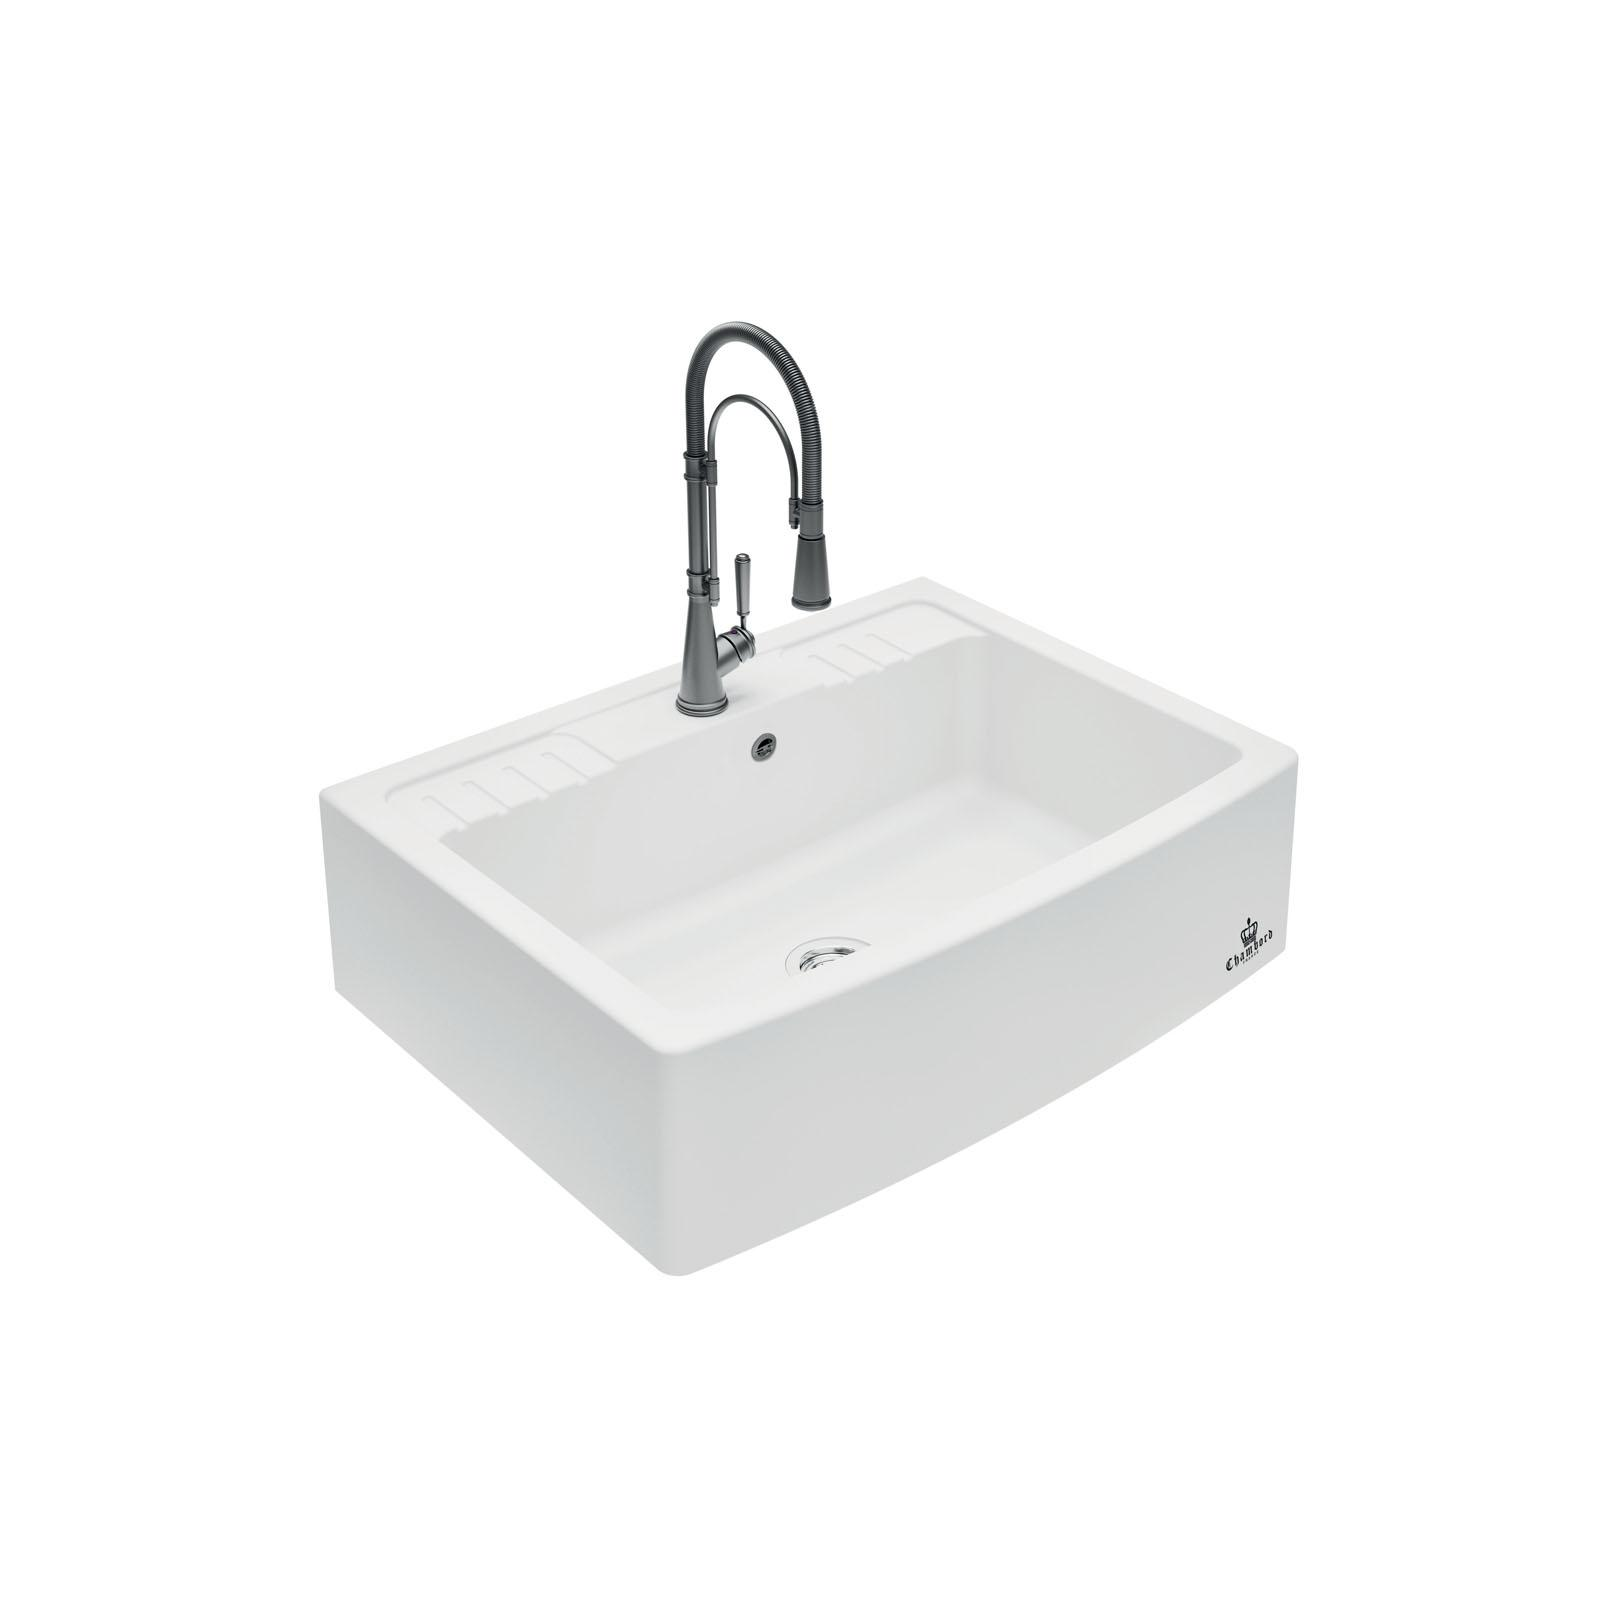 High-quality sink Clotaire IV granit white - one bowl